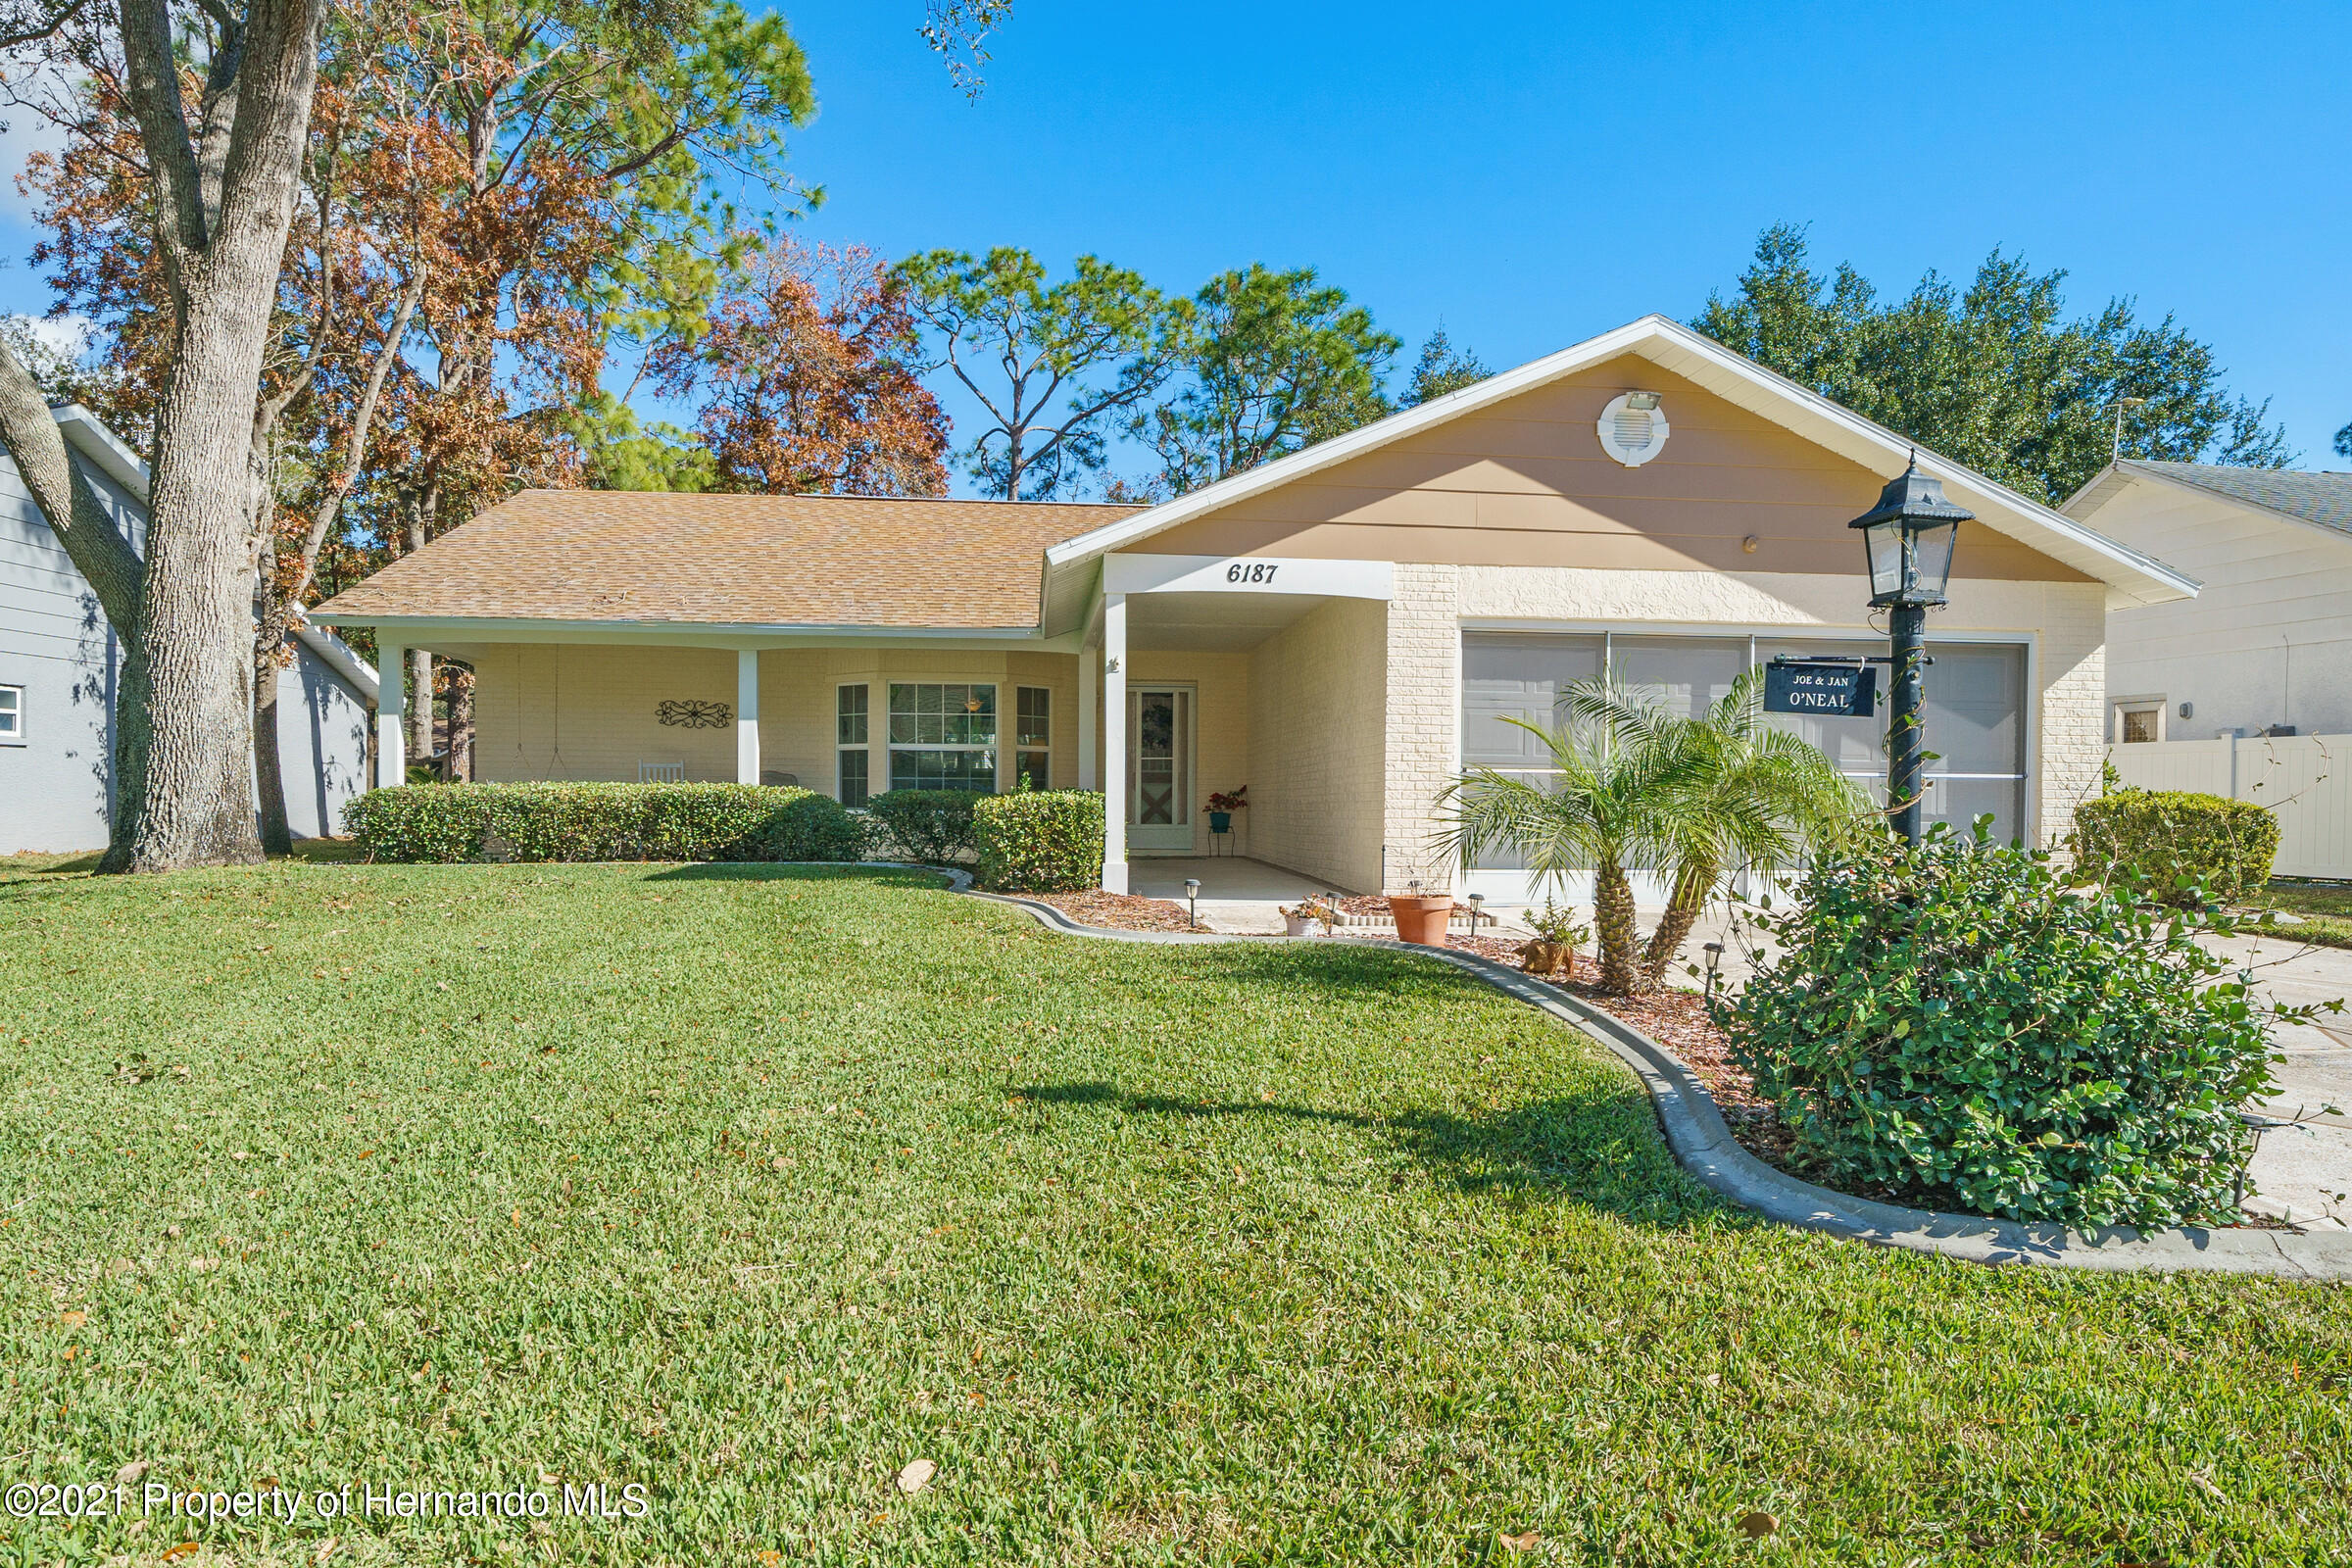 Details for 6187 Ocean Pines Lane, Spring Hill, FL 34606